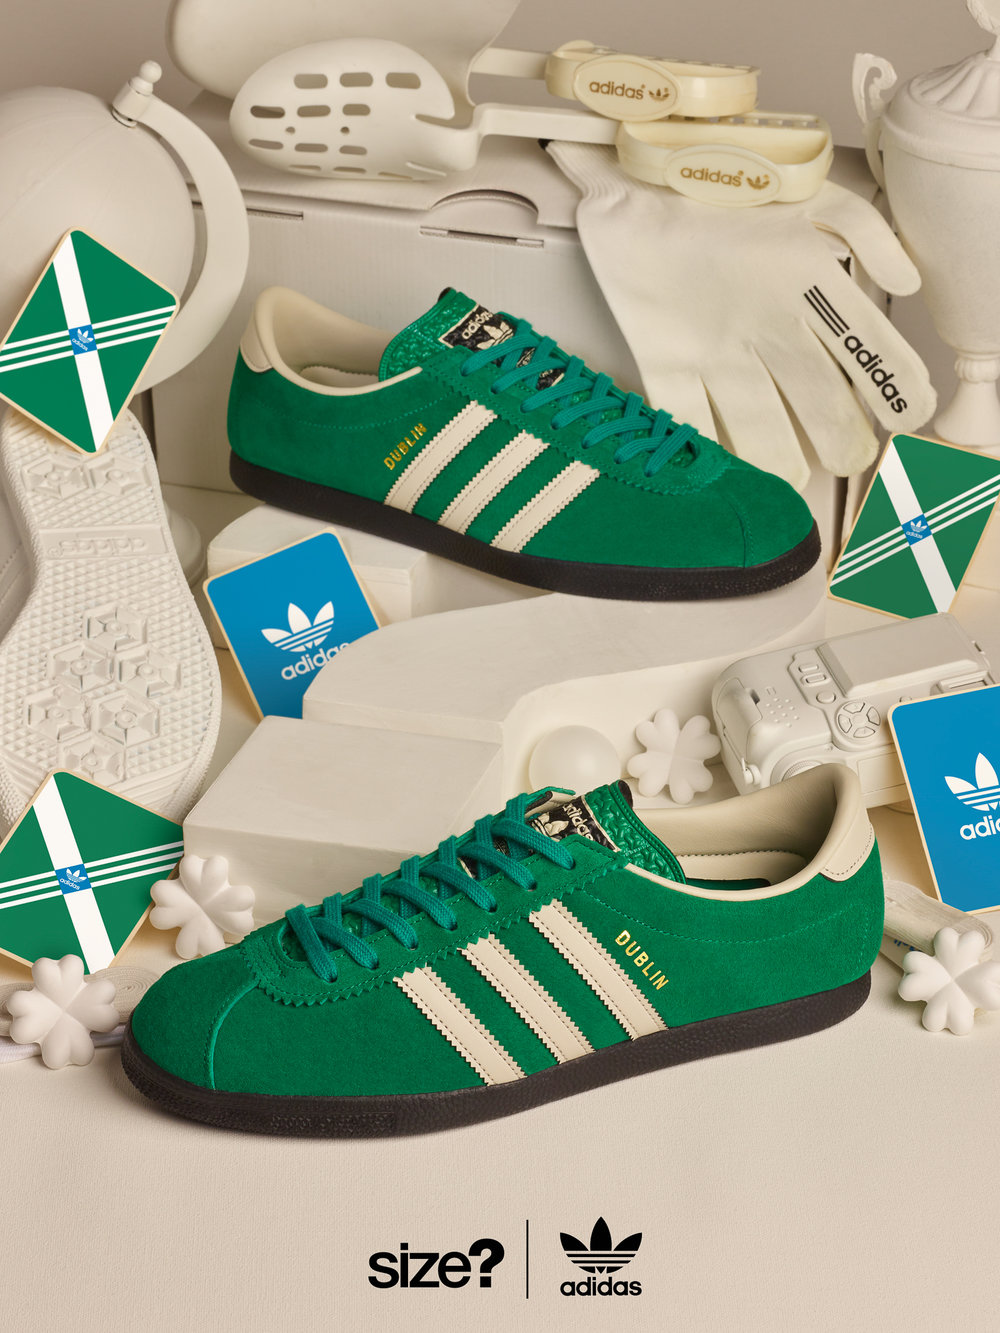 buy online 78ceb 0b814 adidas Originals and size have commissioned TCO to produce a limited  edition run of zines throughout 2018 to support the adidas archive project,  ...